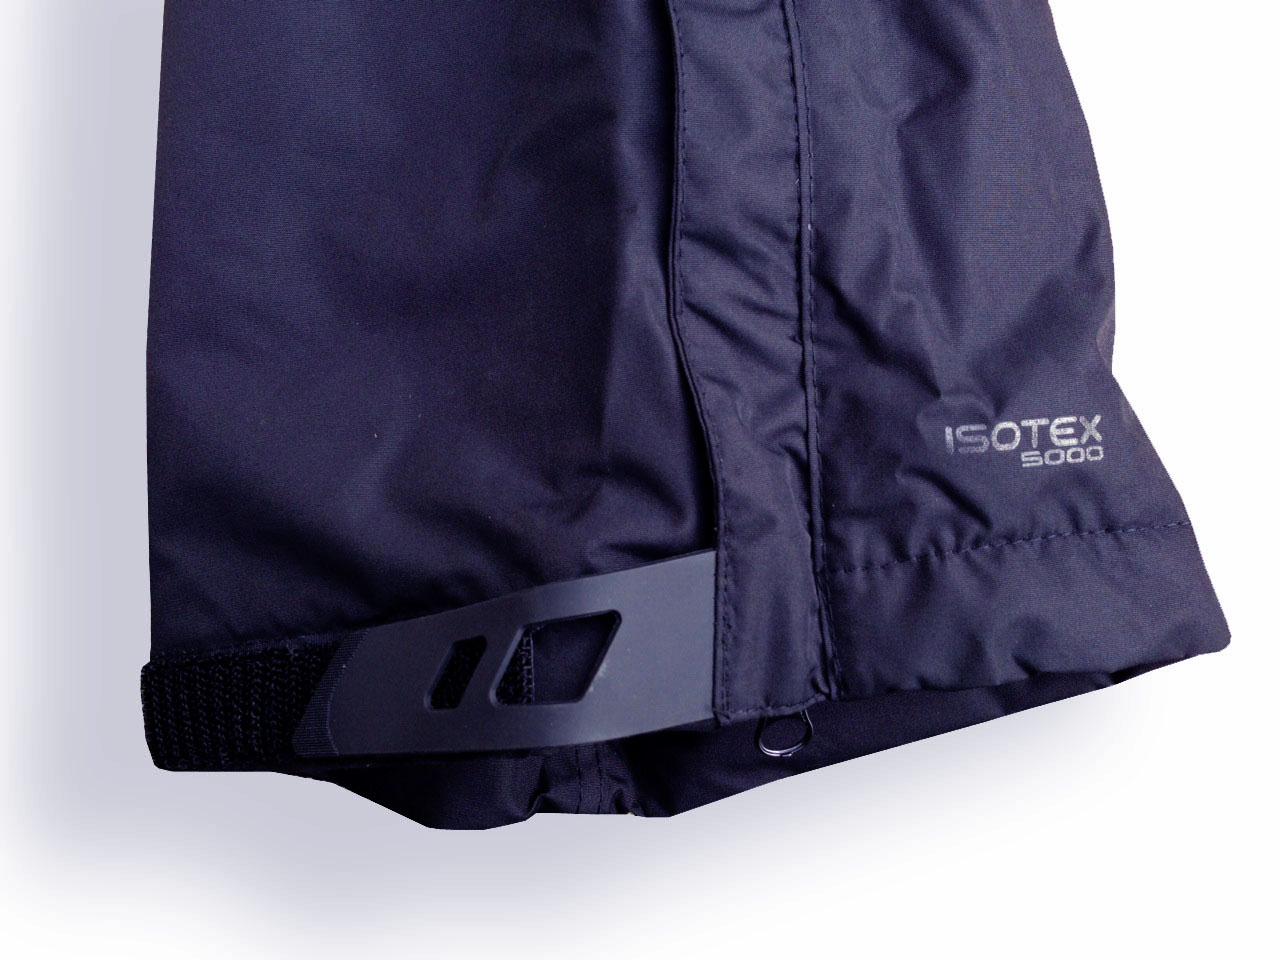 Regatta-Wetherby-Mens-Waterproof-Brthable-Thermal-Padded-Insulated-Over-Trousers thumbnail 4